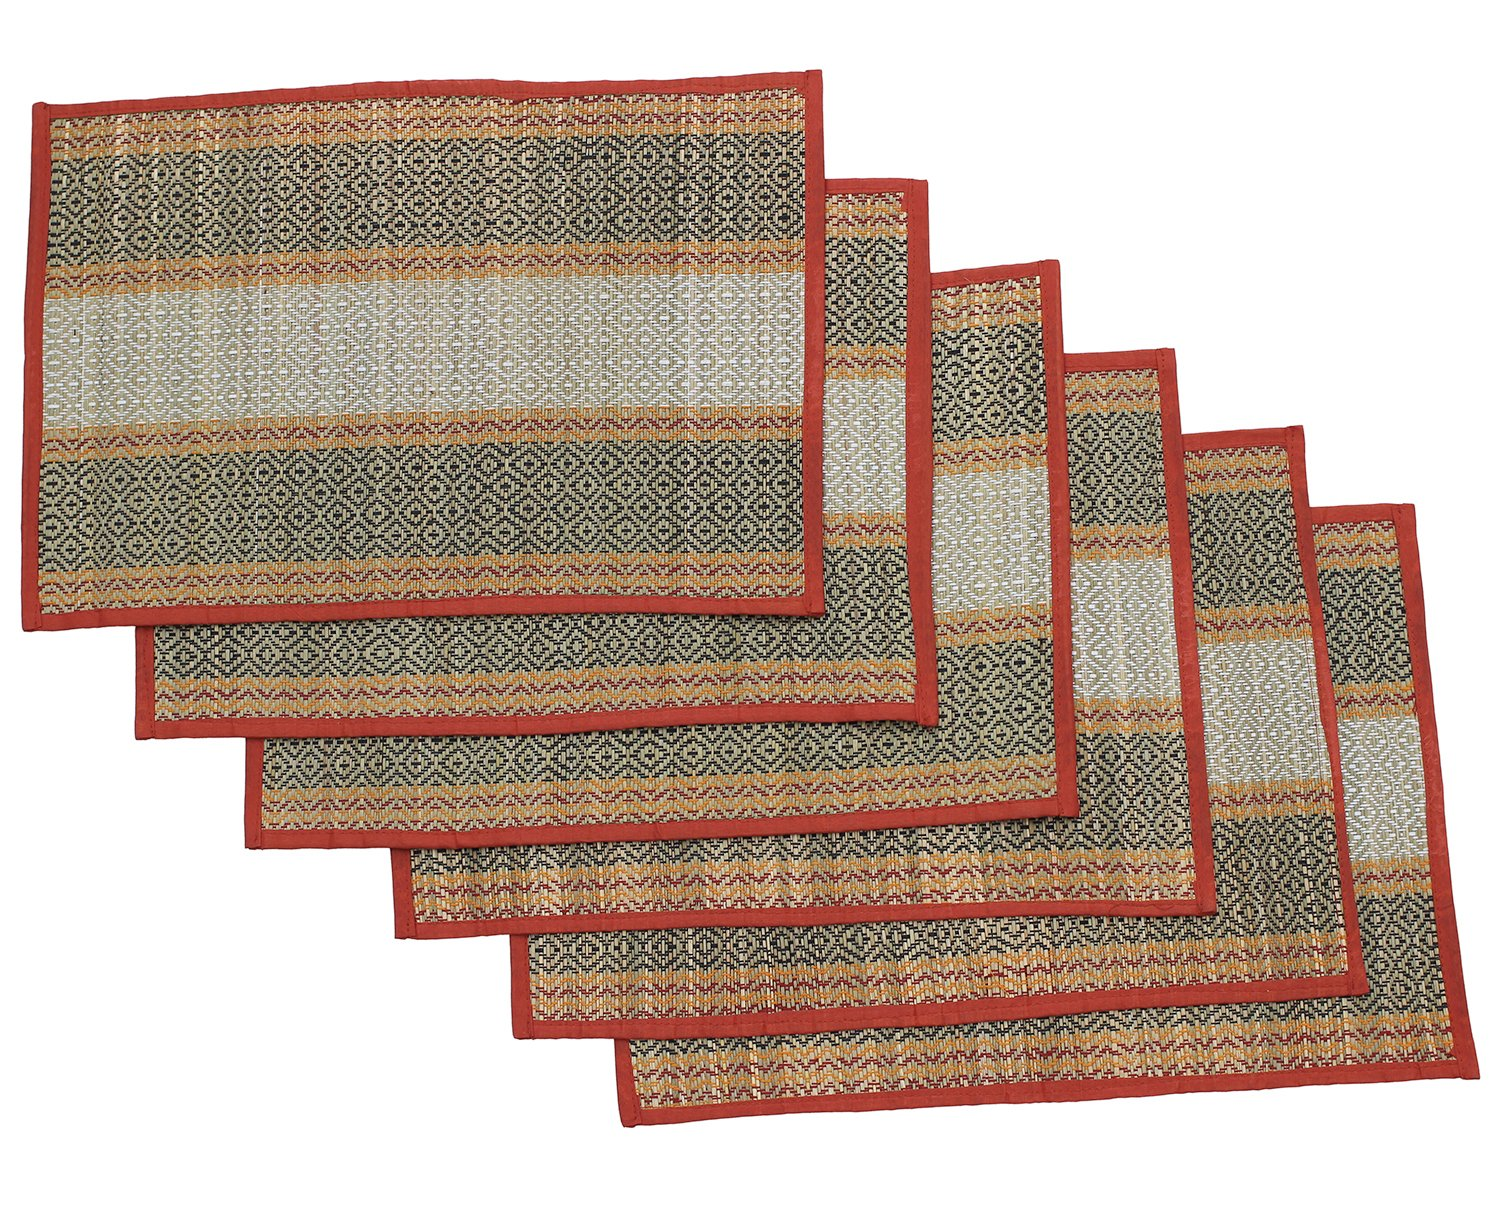 SouvNear Set of 6 Placemats for Dining / Kitchen / Beach - Reversible Mats Woven Straws and Threads - Natural Handmade Placemat Set from India - Exclusive Design Set of 6 fair trade, handmade placemats - 12x16 Woven with 'Darba' or 'Kusha' grass (Desmostachya Bipinnata) & cotton thread - placemats, kitchen-dining-room-table-linens, kitchen-dining-room - 919o%2B8IZFUL -